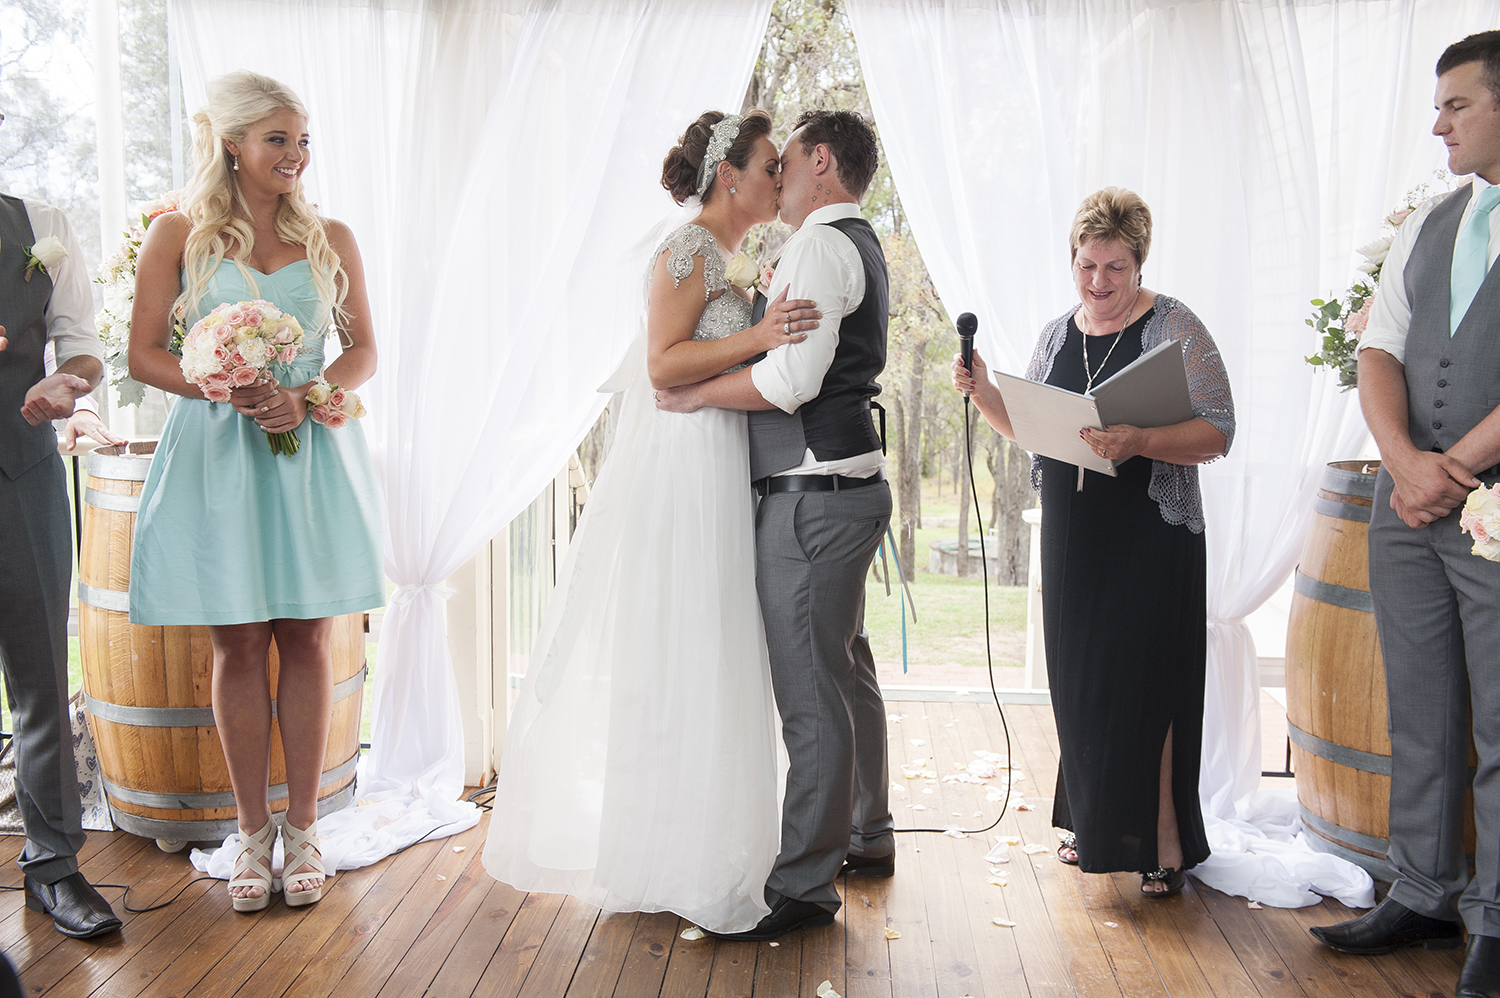 Our Wedding0386.jpg